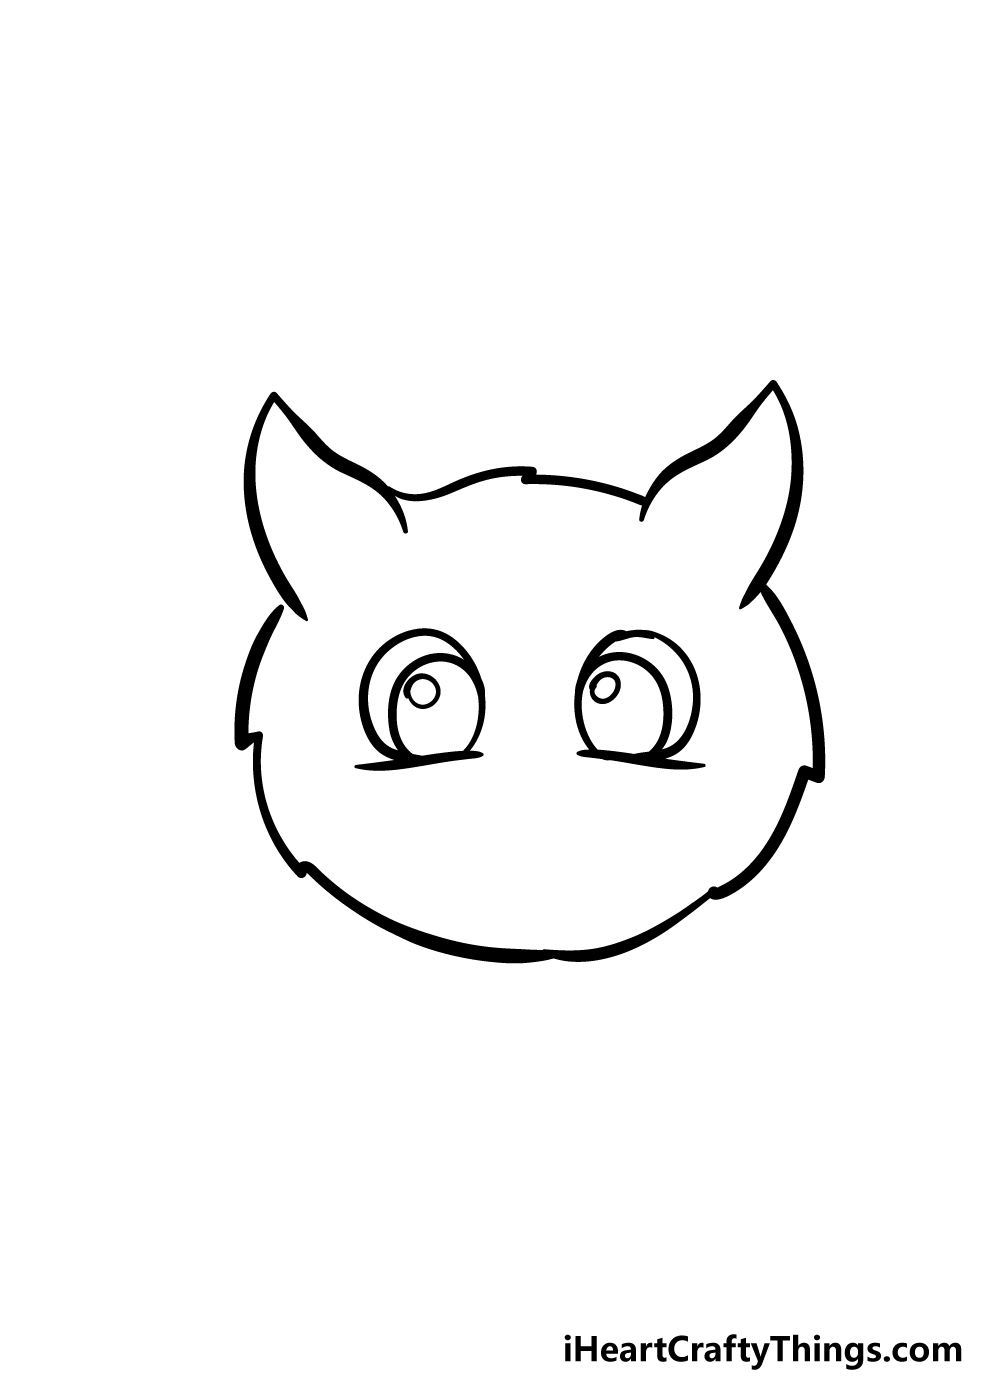 cat face drawing step 4